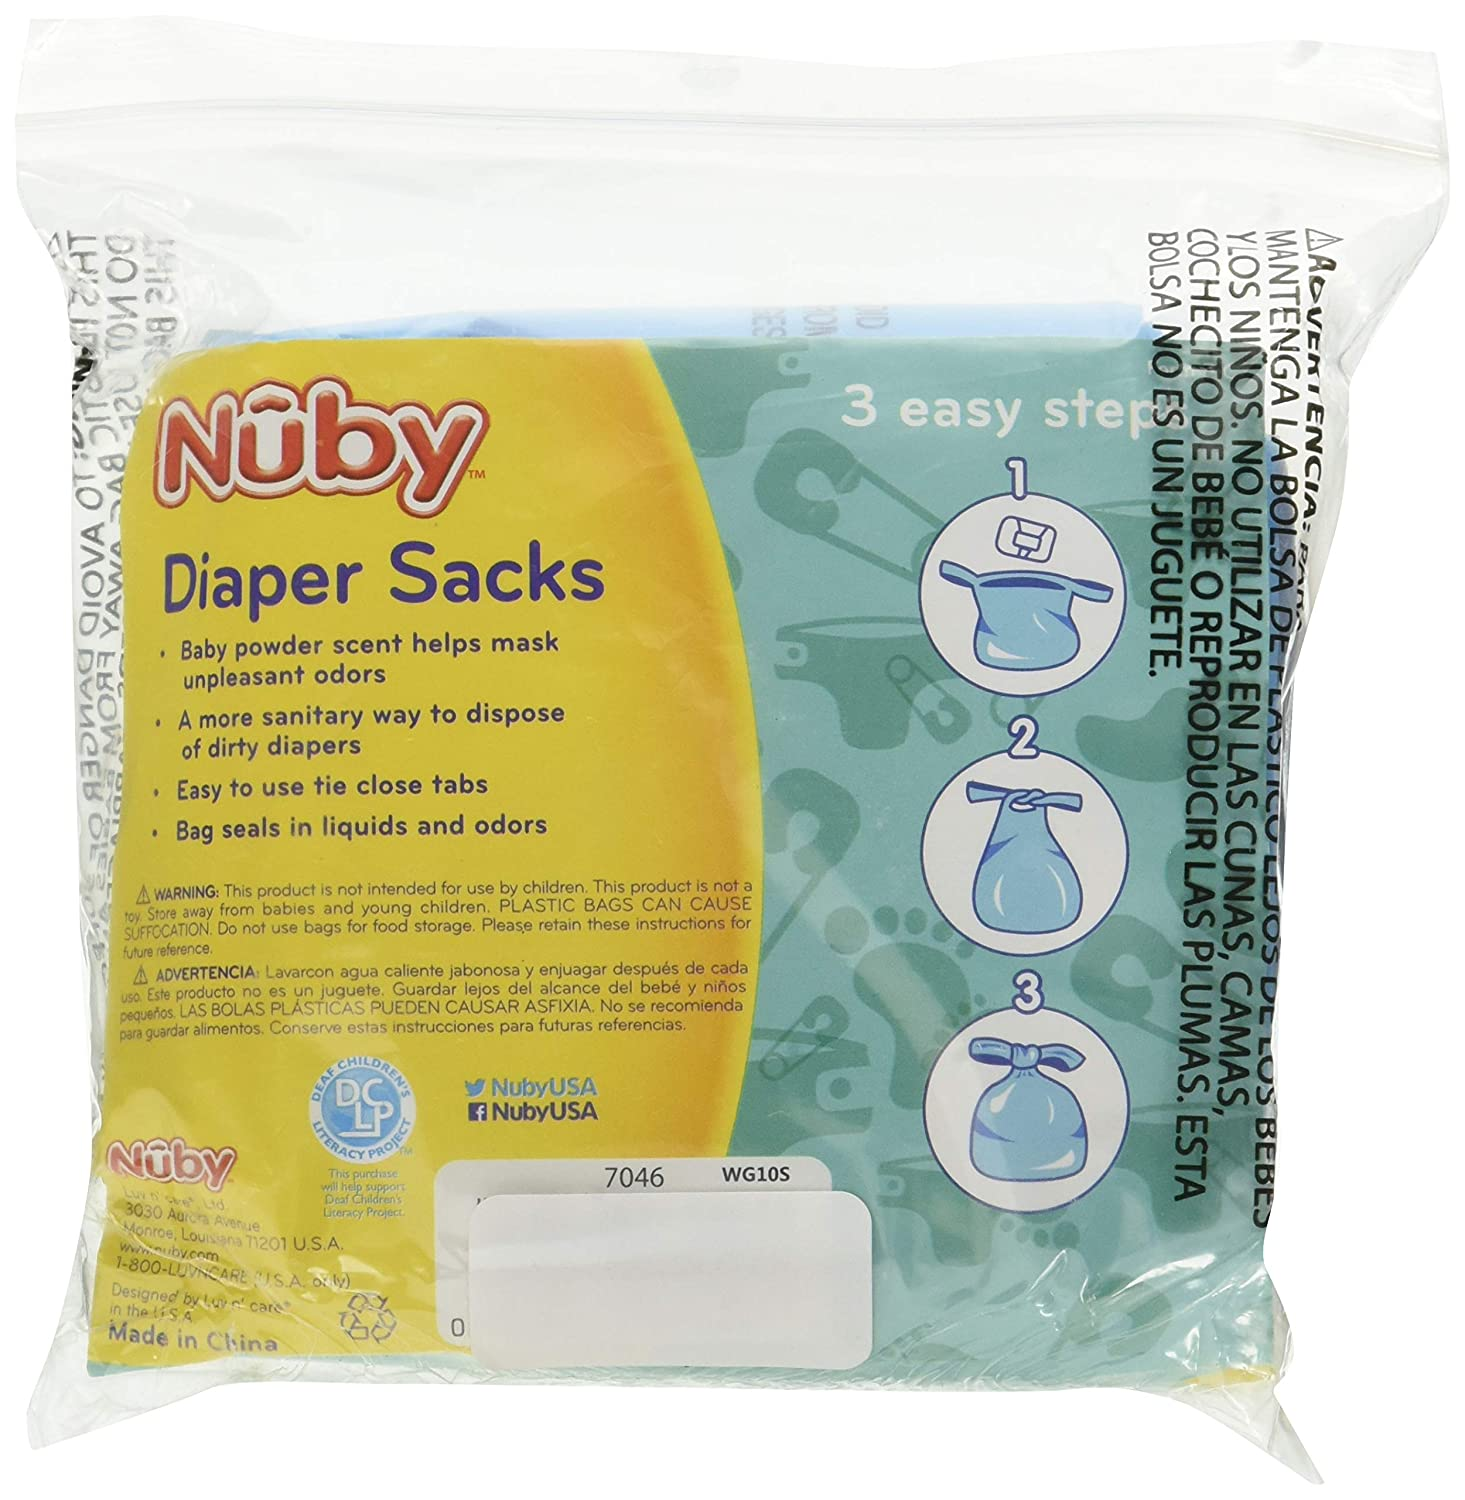 Nuby Diaper Bags, 300 Count (6 Packages)